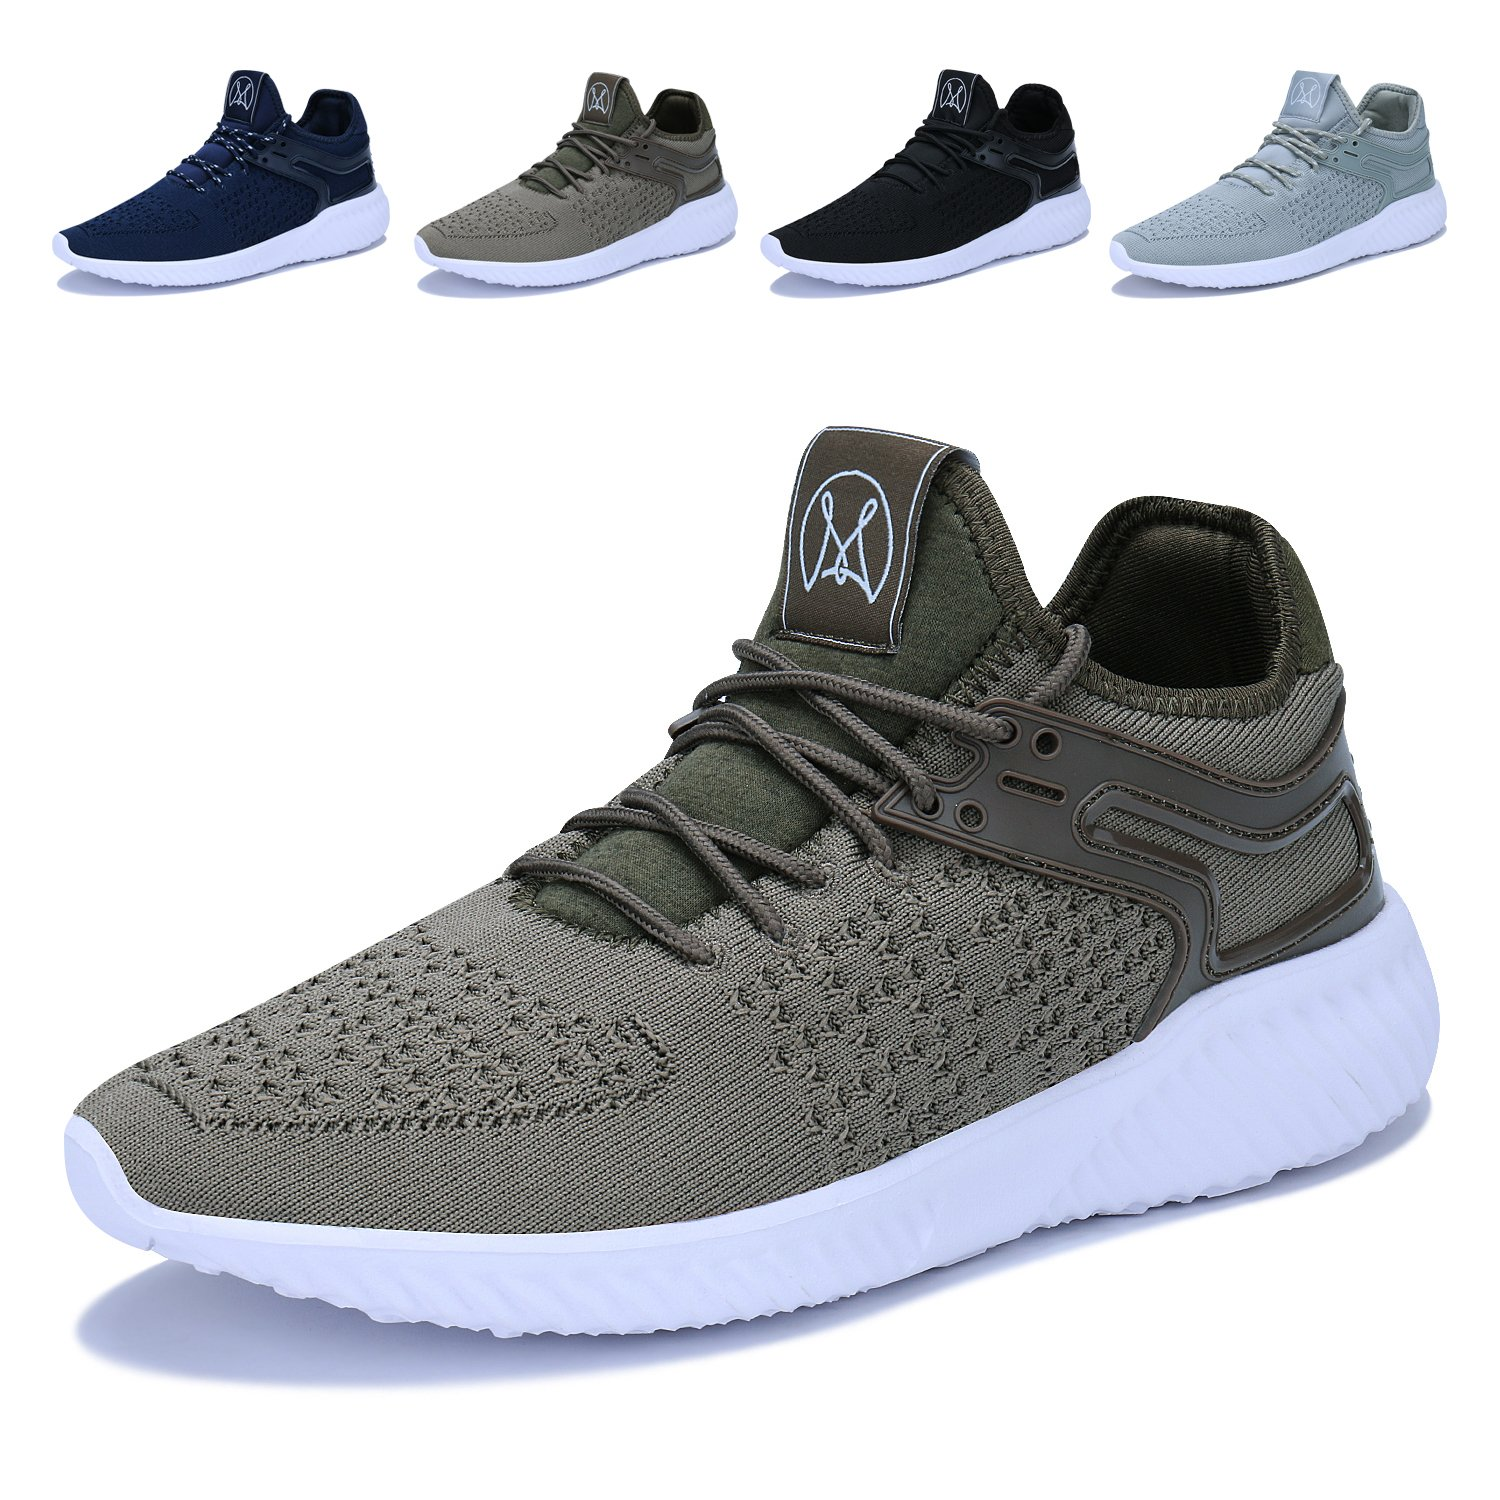 Men's Casual Walking Shoes Lightweight Breathable Running Tennis Sneakers (8 D(M) US, 04-Khaki)